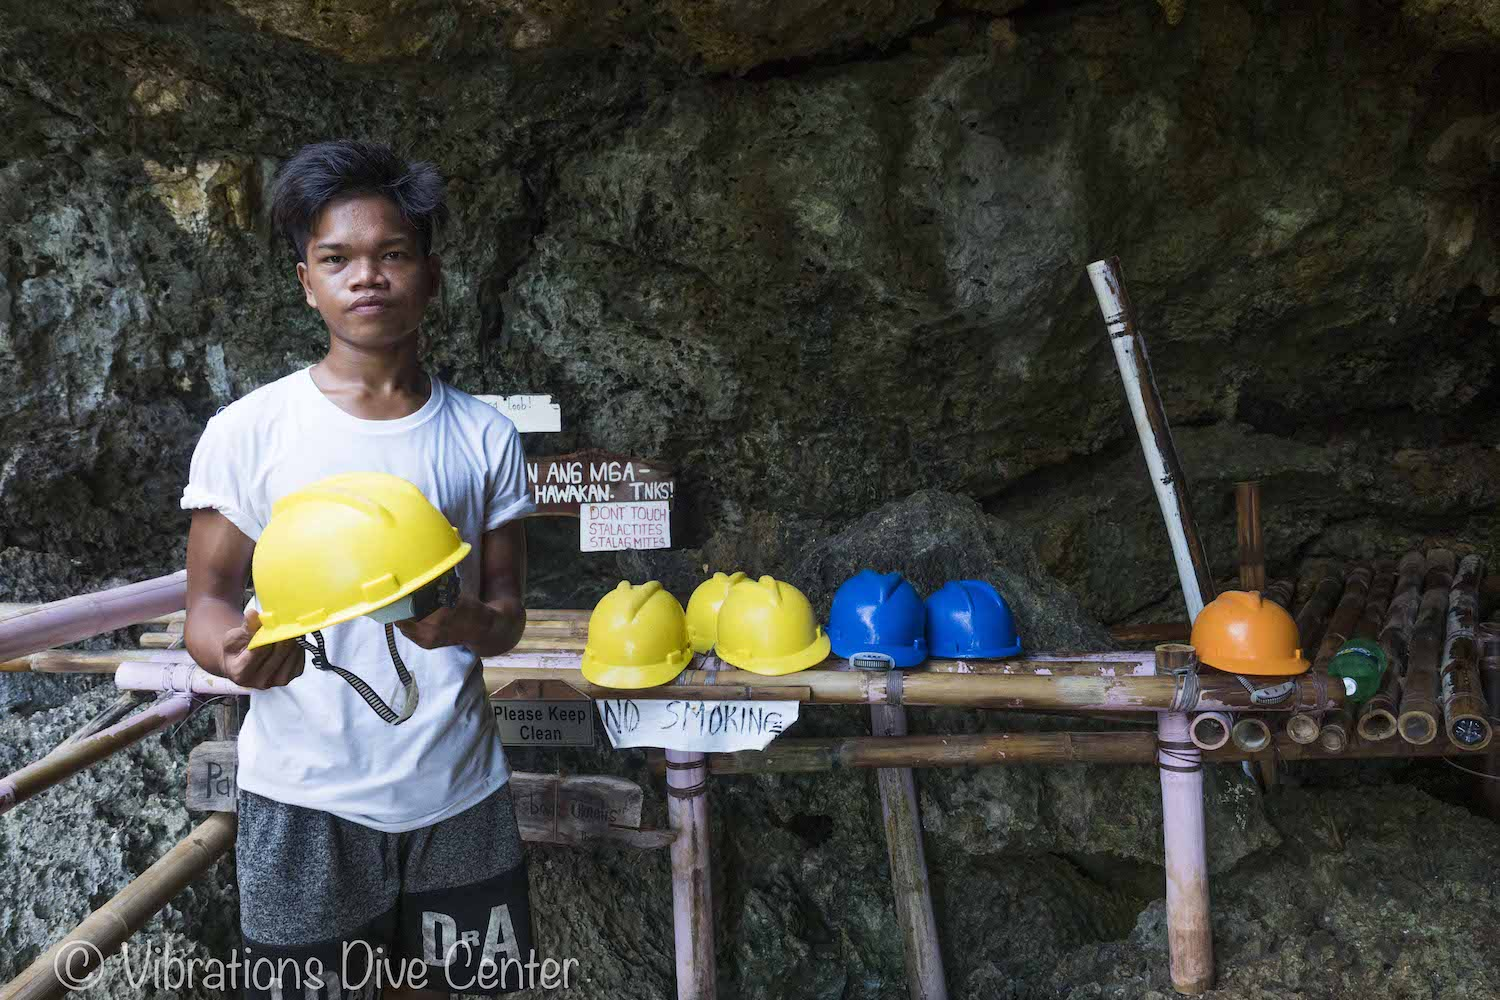 Cathedral Cave, Carabao Island, San Jose, Romblon. Informations activities and things to do on Carabao.